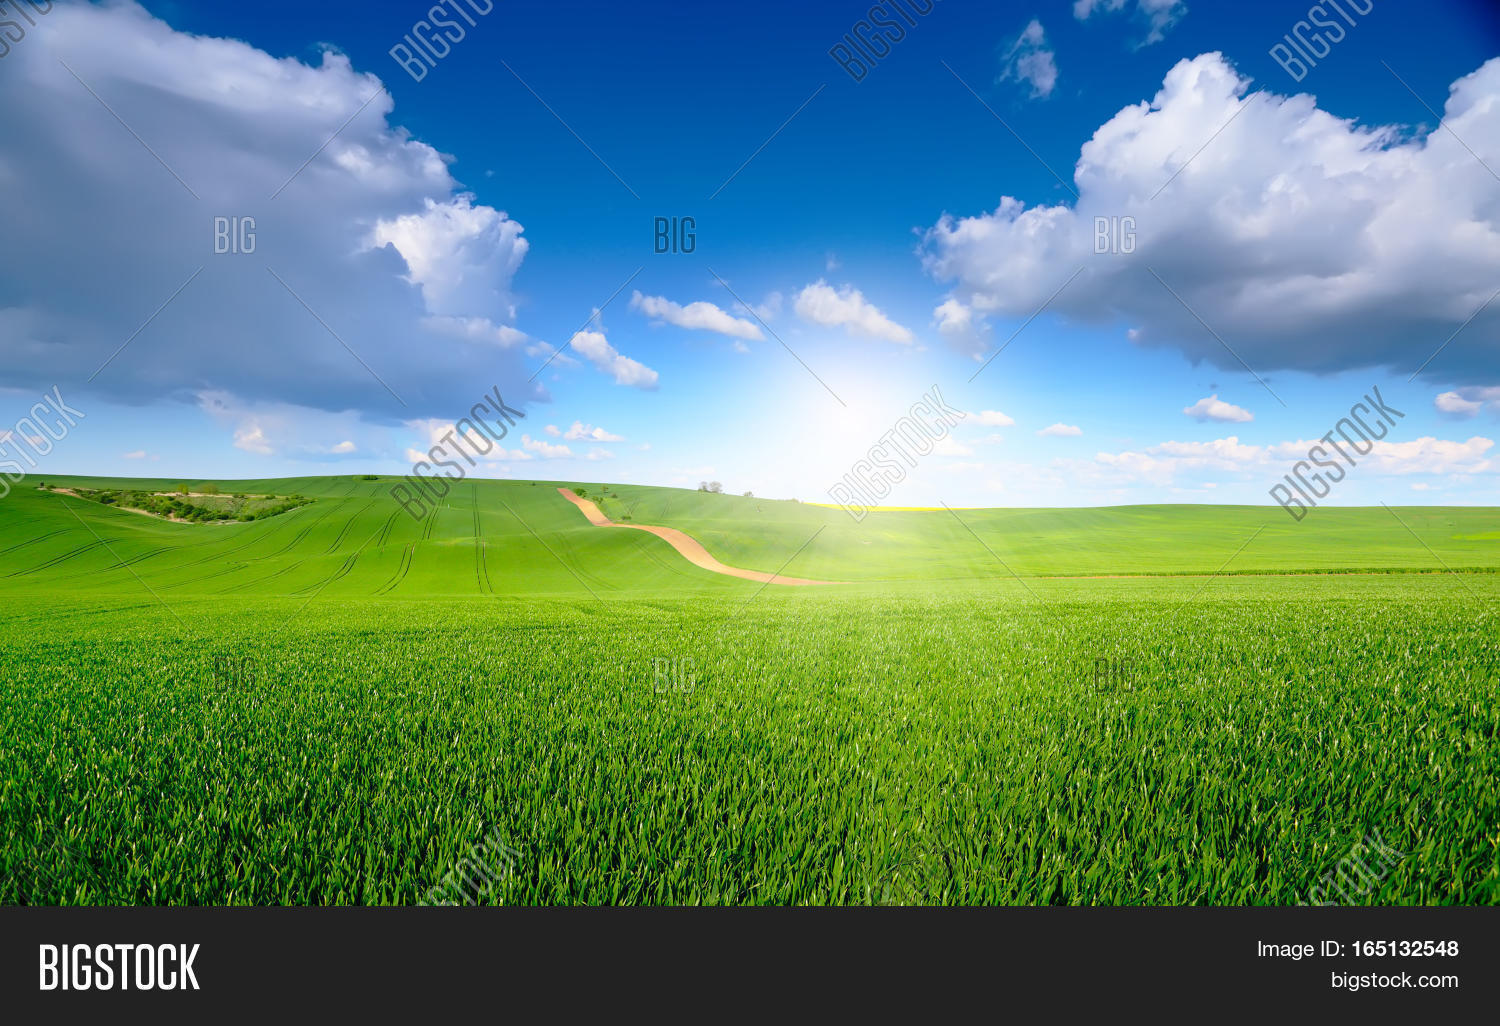 blue sky above green image & photo (free trial) | bigstock